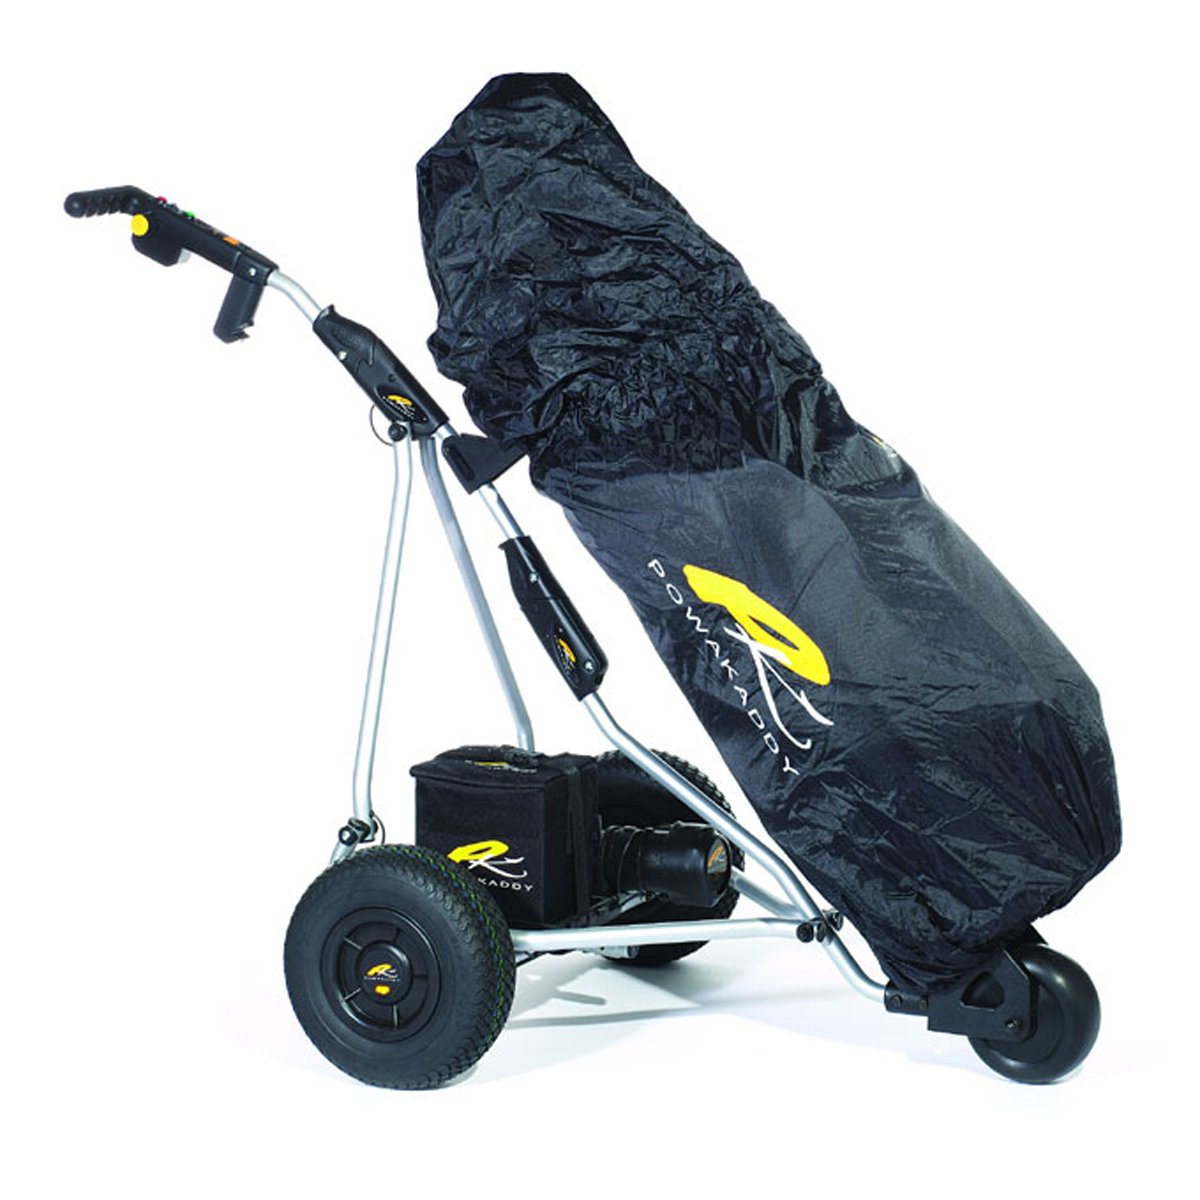 Powakaddy 2012 Golf Bag Rain Cover Black Fits All Bags